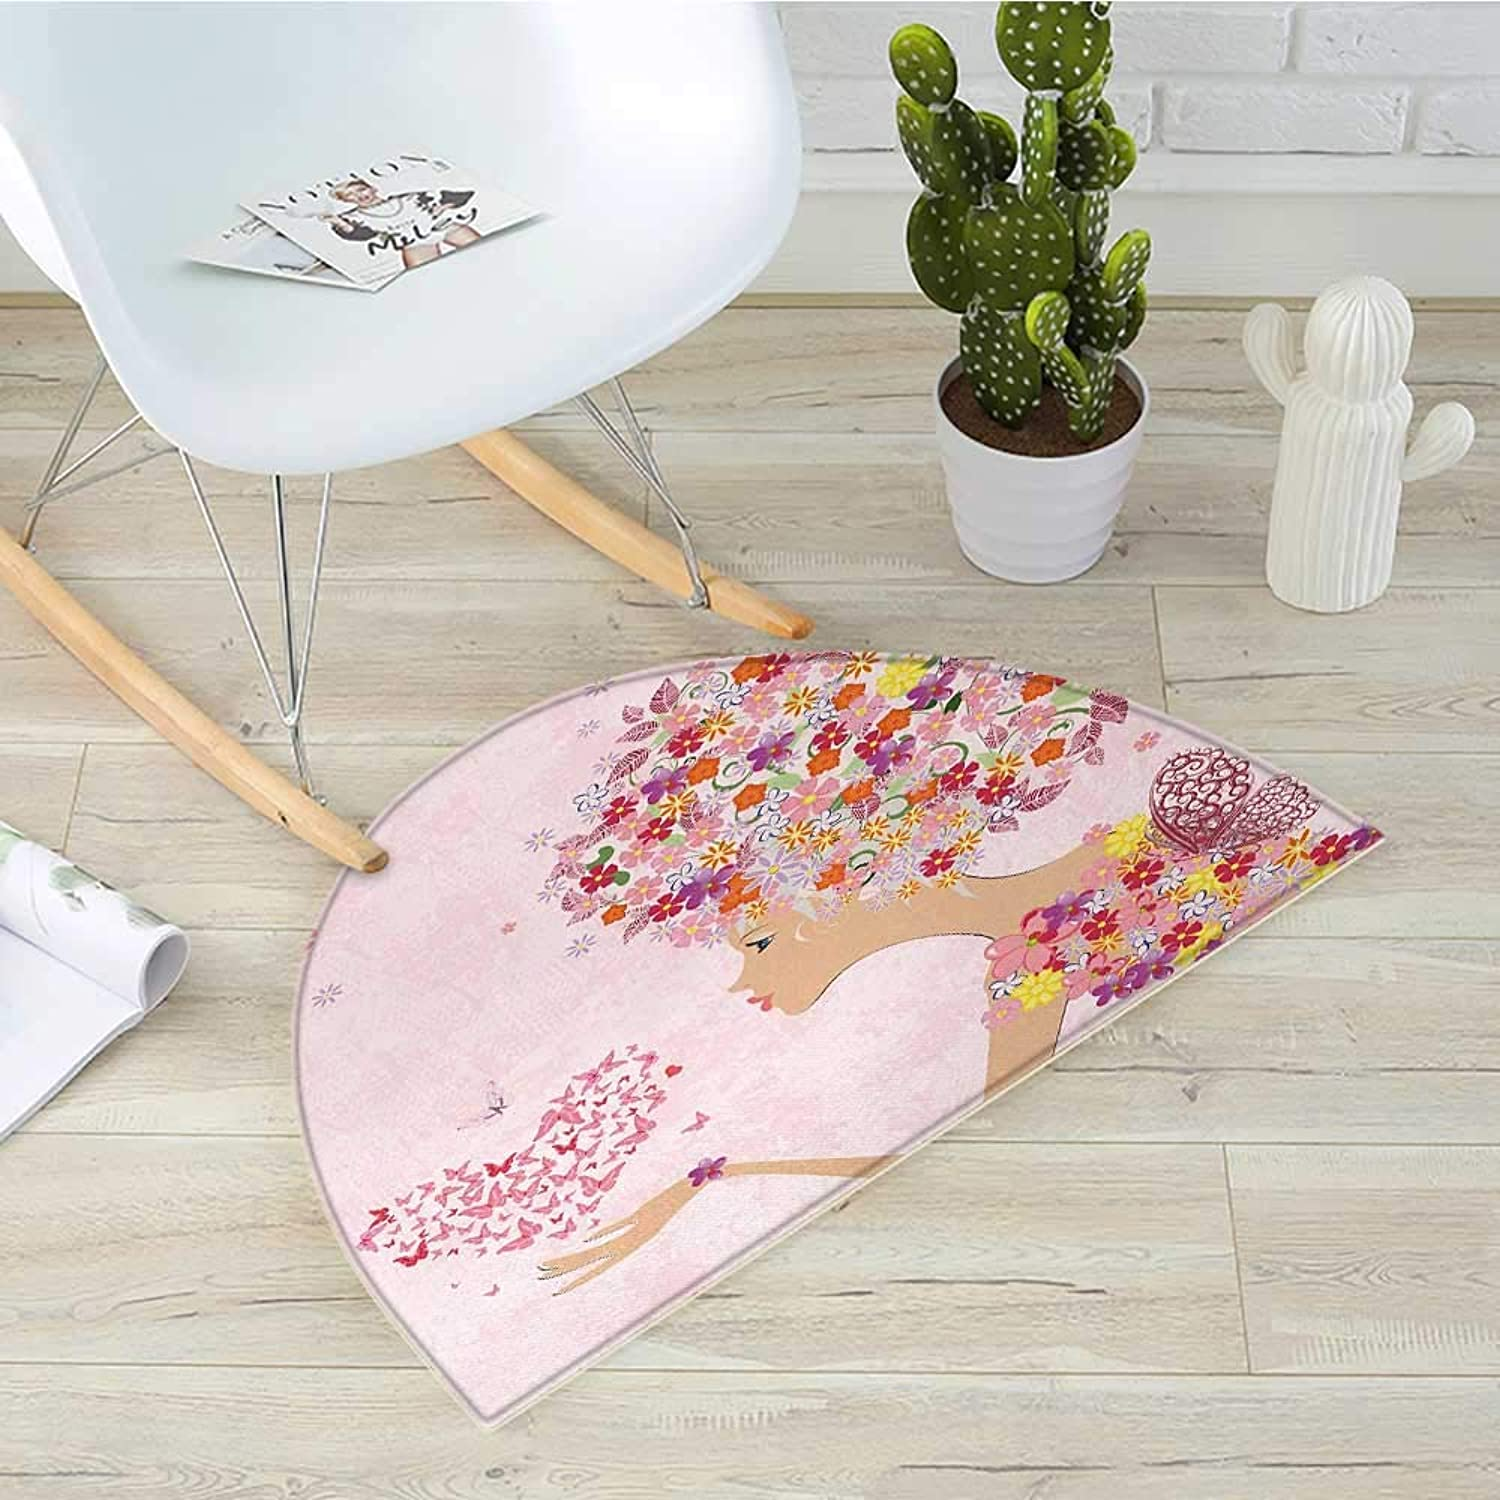 Pink Semicircle Doormat Fashion Flowers Girl with Heart of Butterflies Wings Spring Theme Artistic Hand Drawn Halfmoon doormats H 39.3  xD 59  Multicolor